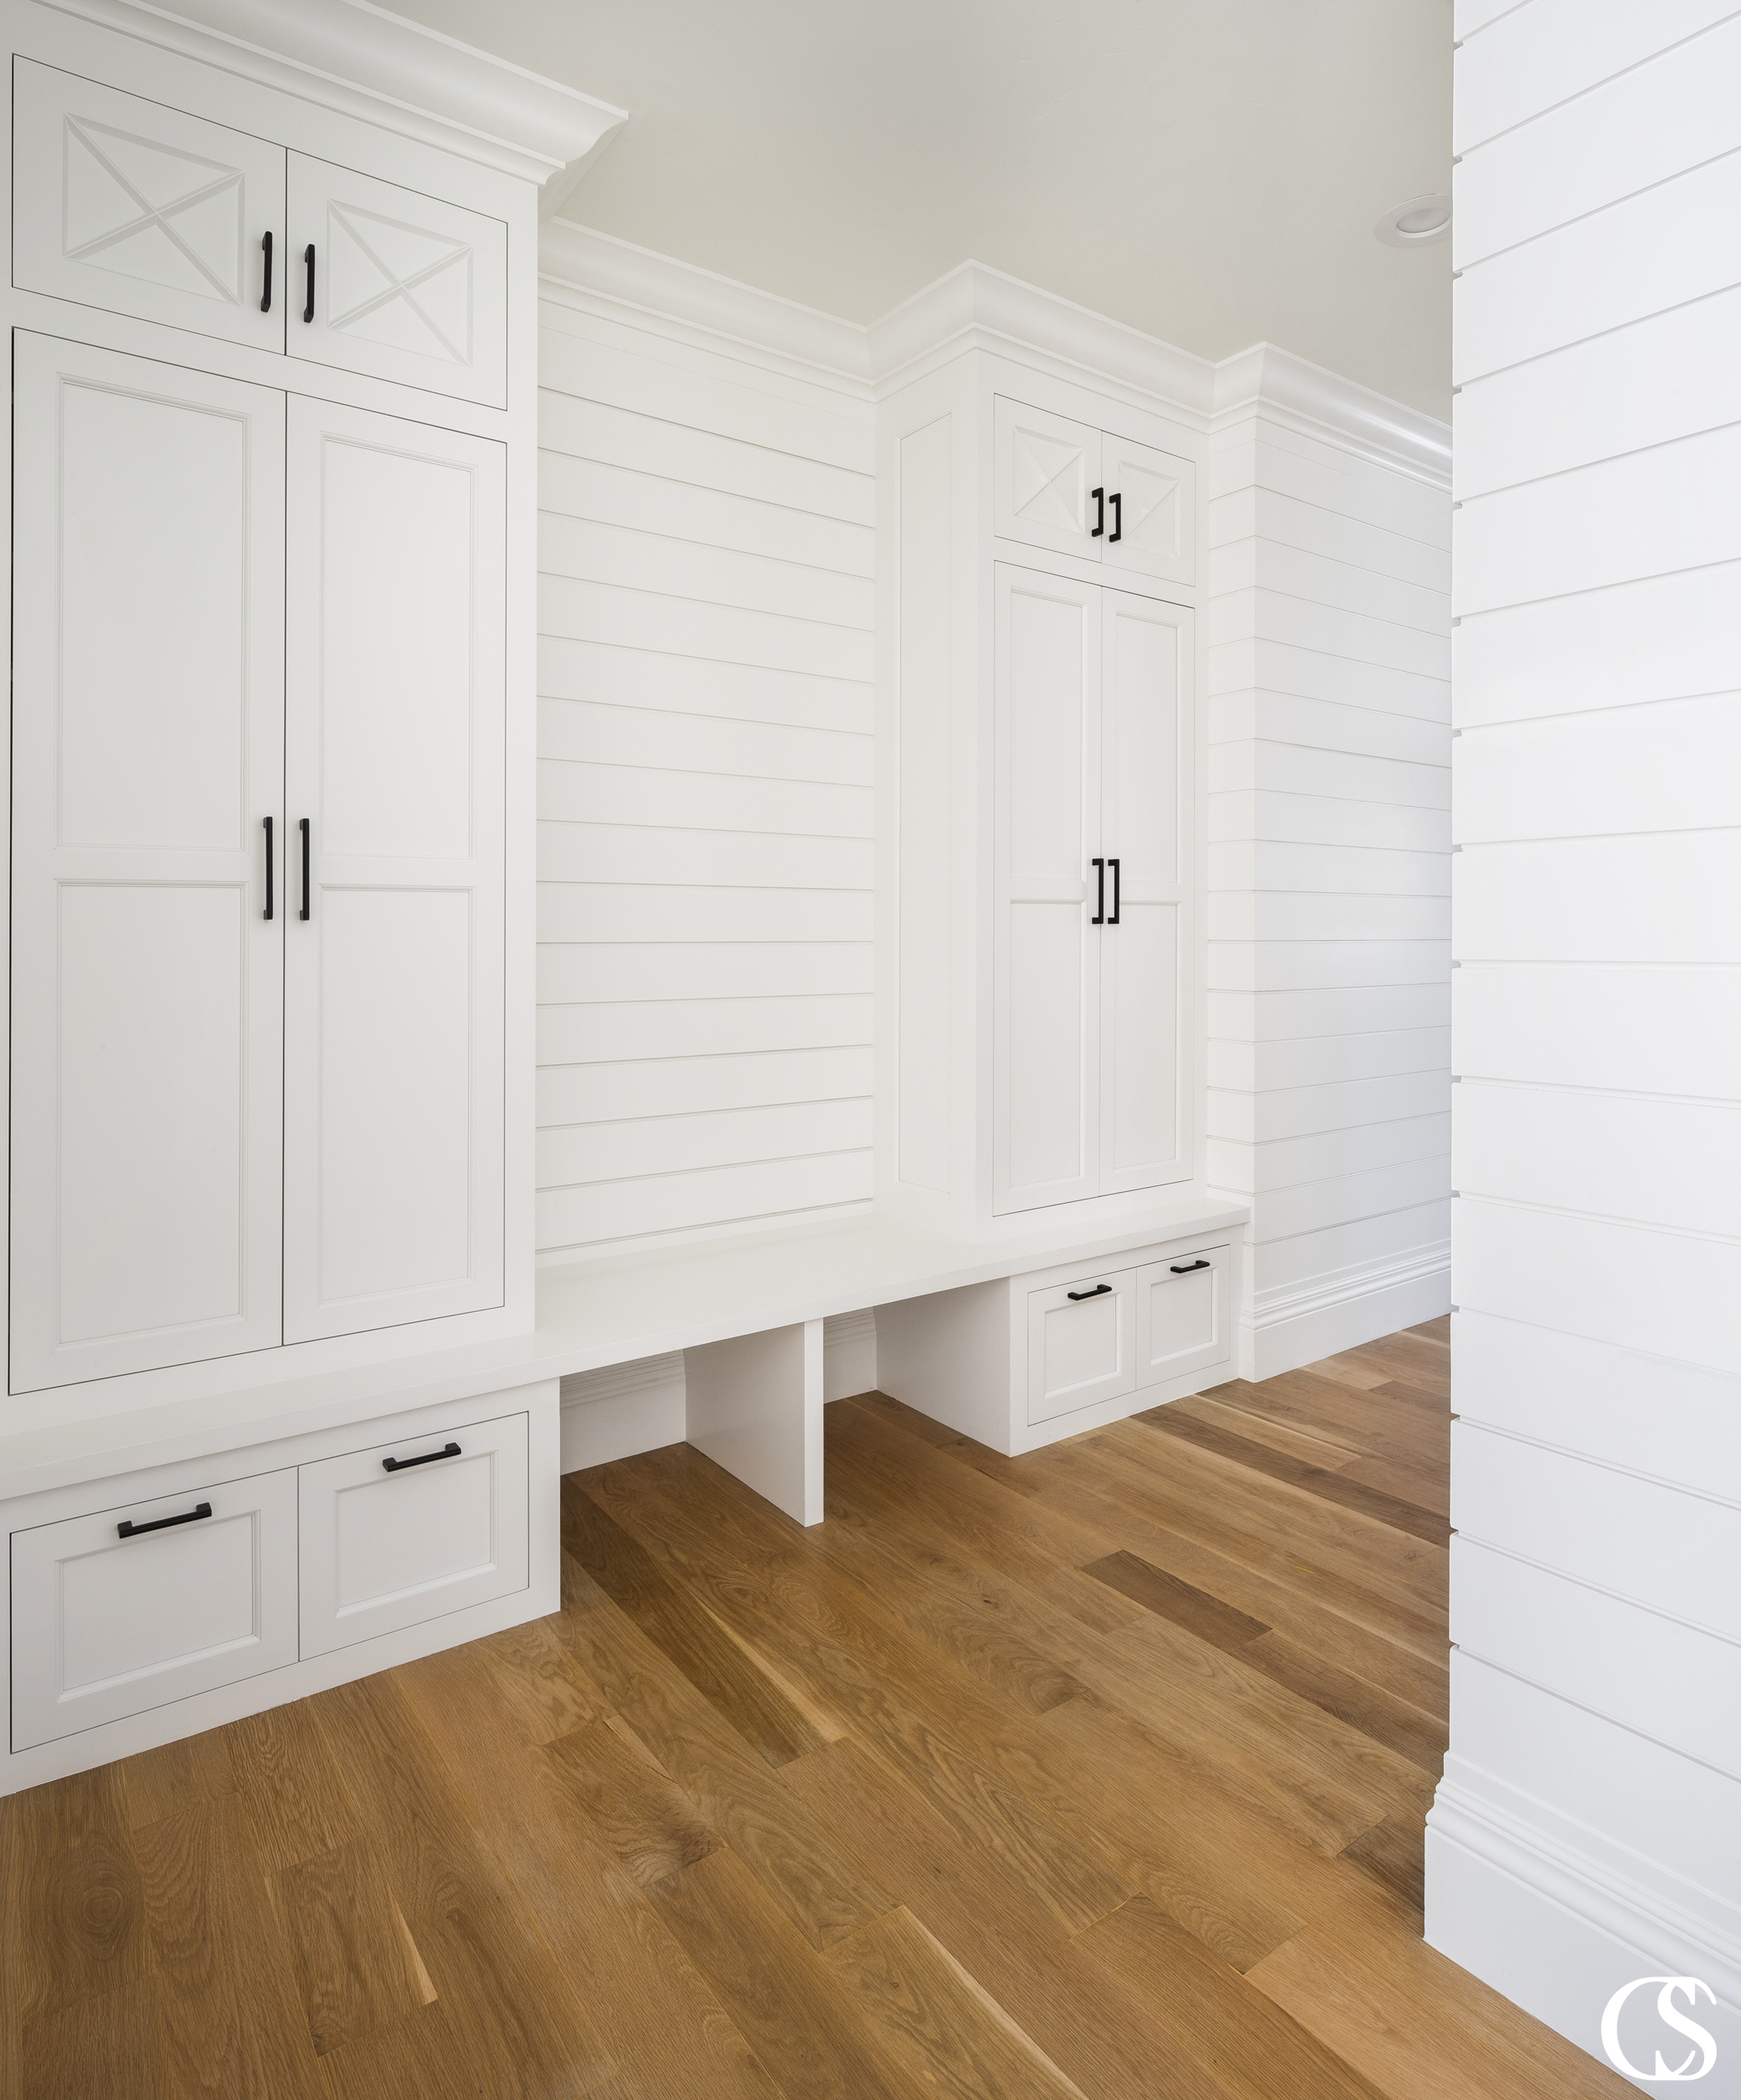 It is a dedicated space in your home that ensures the rest of your home can stay neat and tidy. For some of our best mudroom ideas, check out the blog at ChristopherScottCabinetry.com!